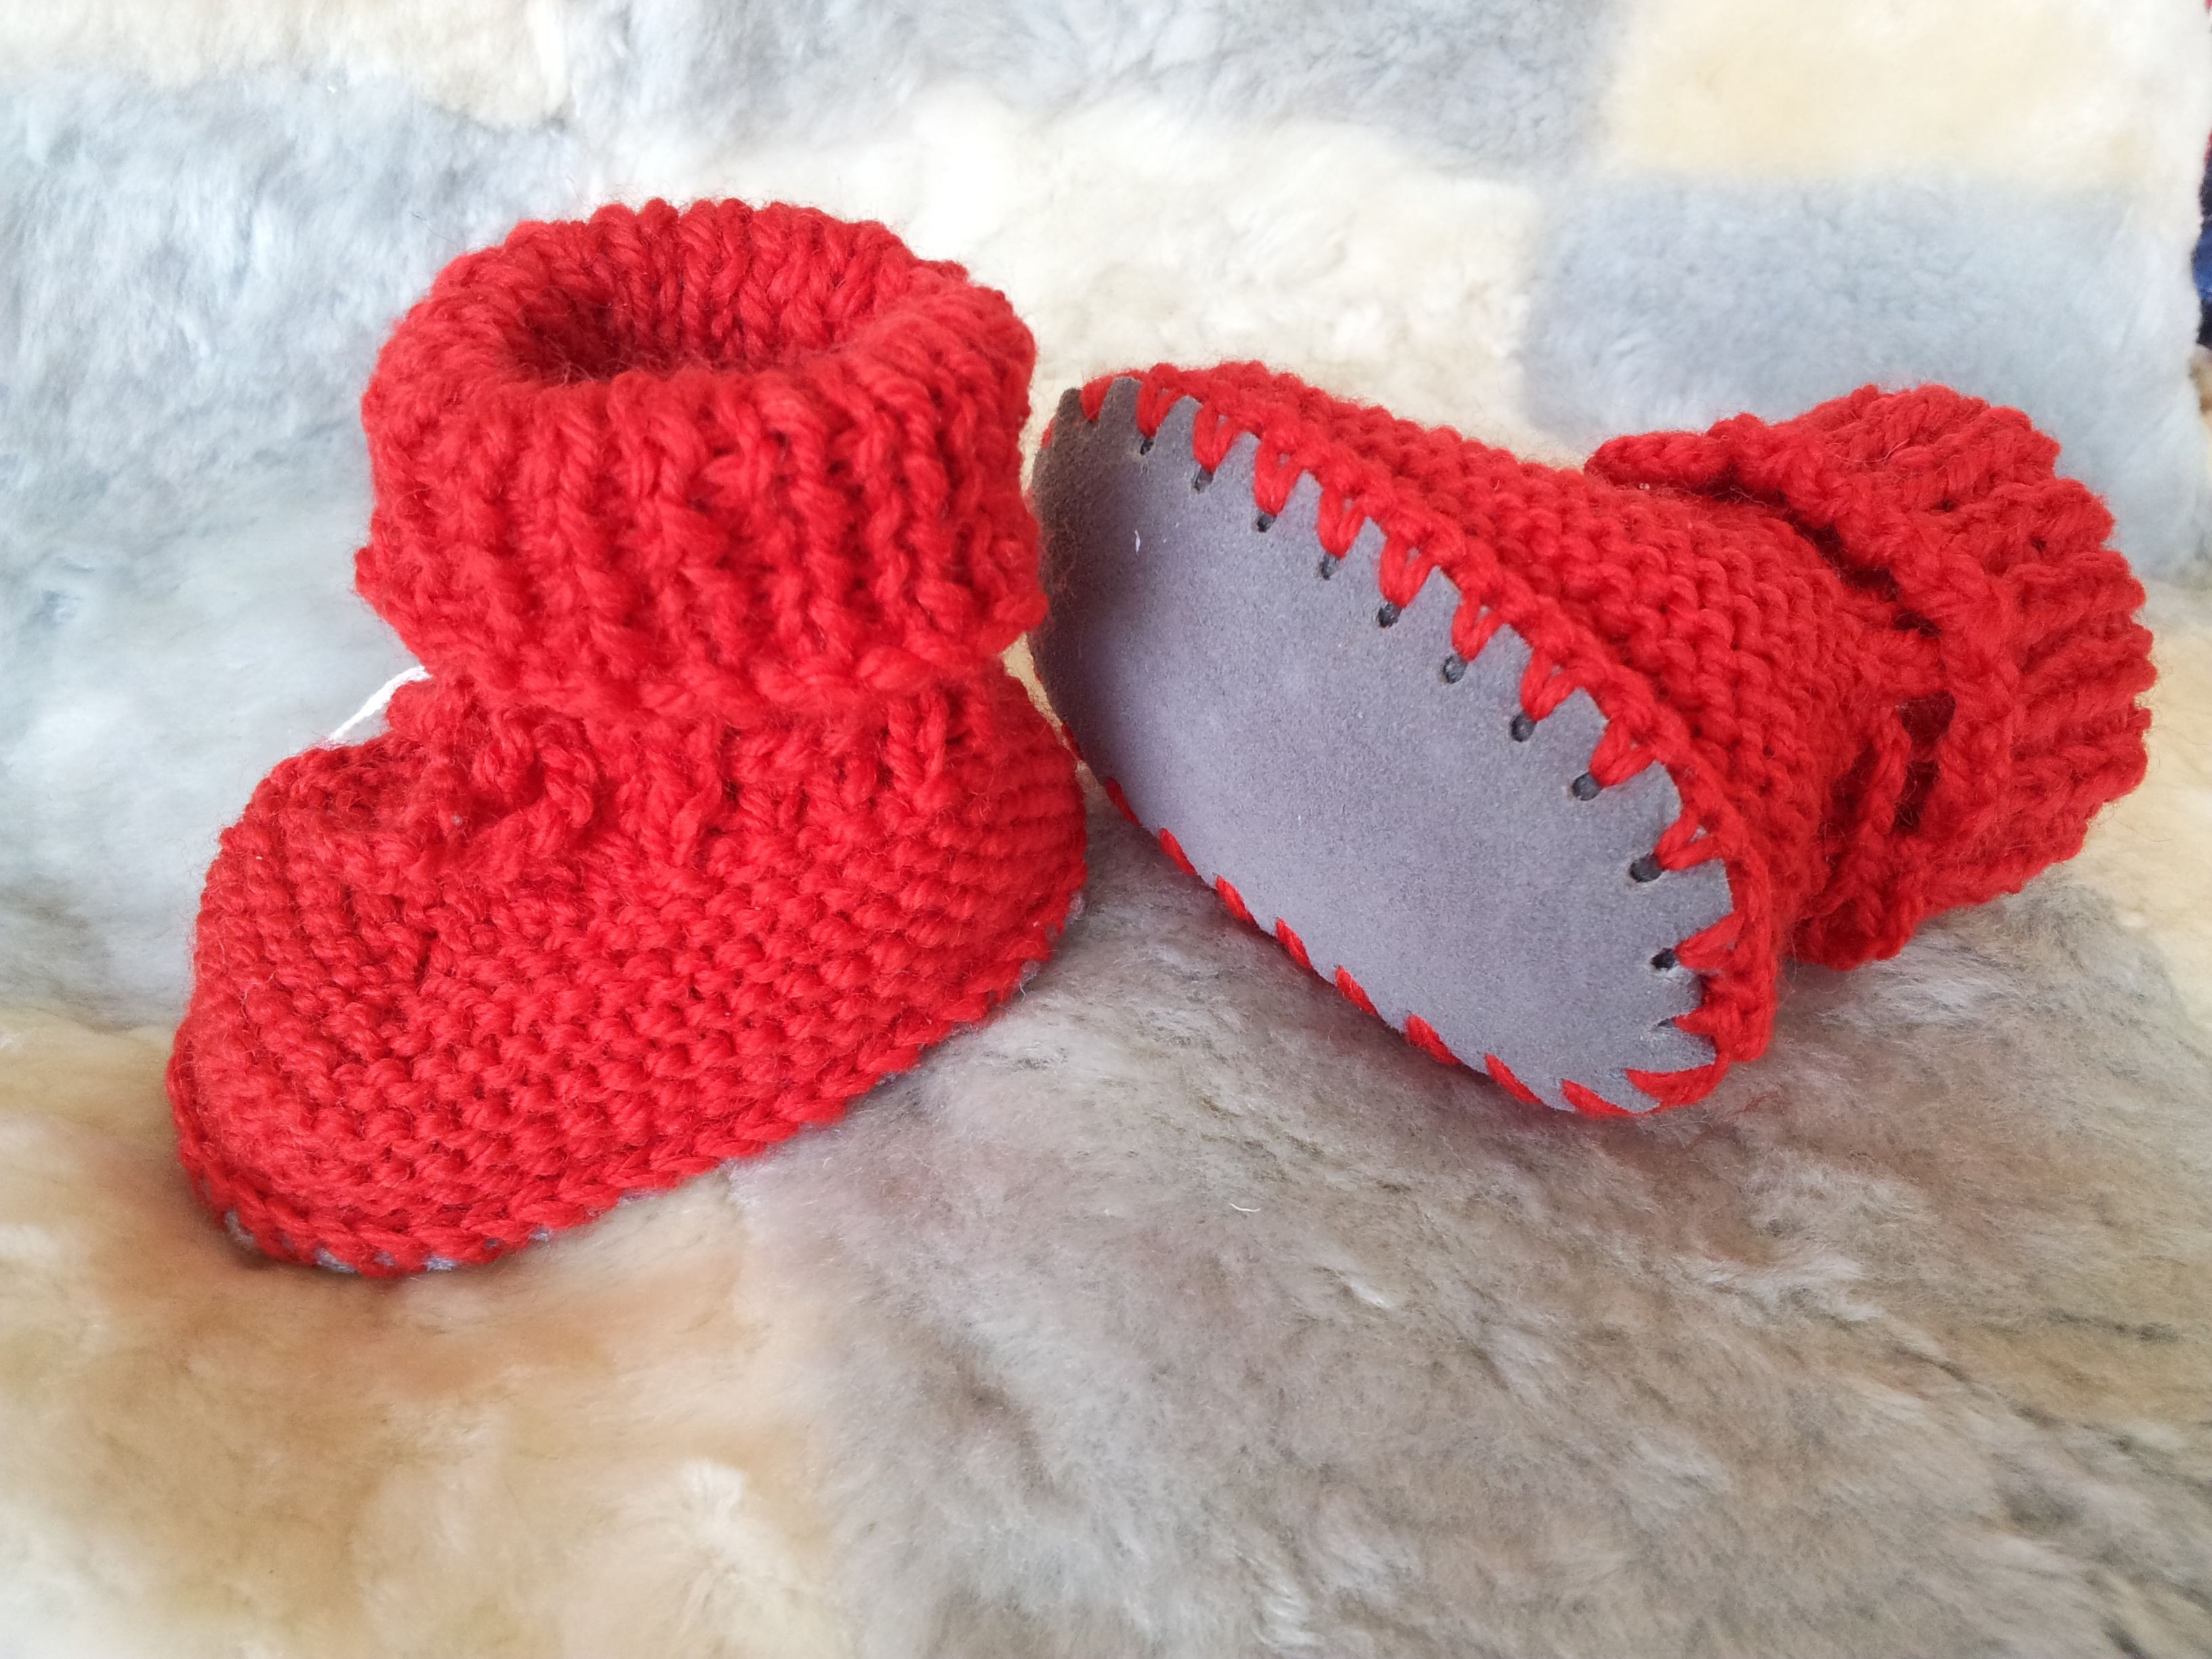 Knitted Baby Booties with Sheepskin Soles | Baby Dress Patterns ...